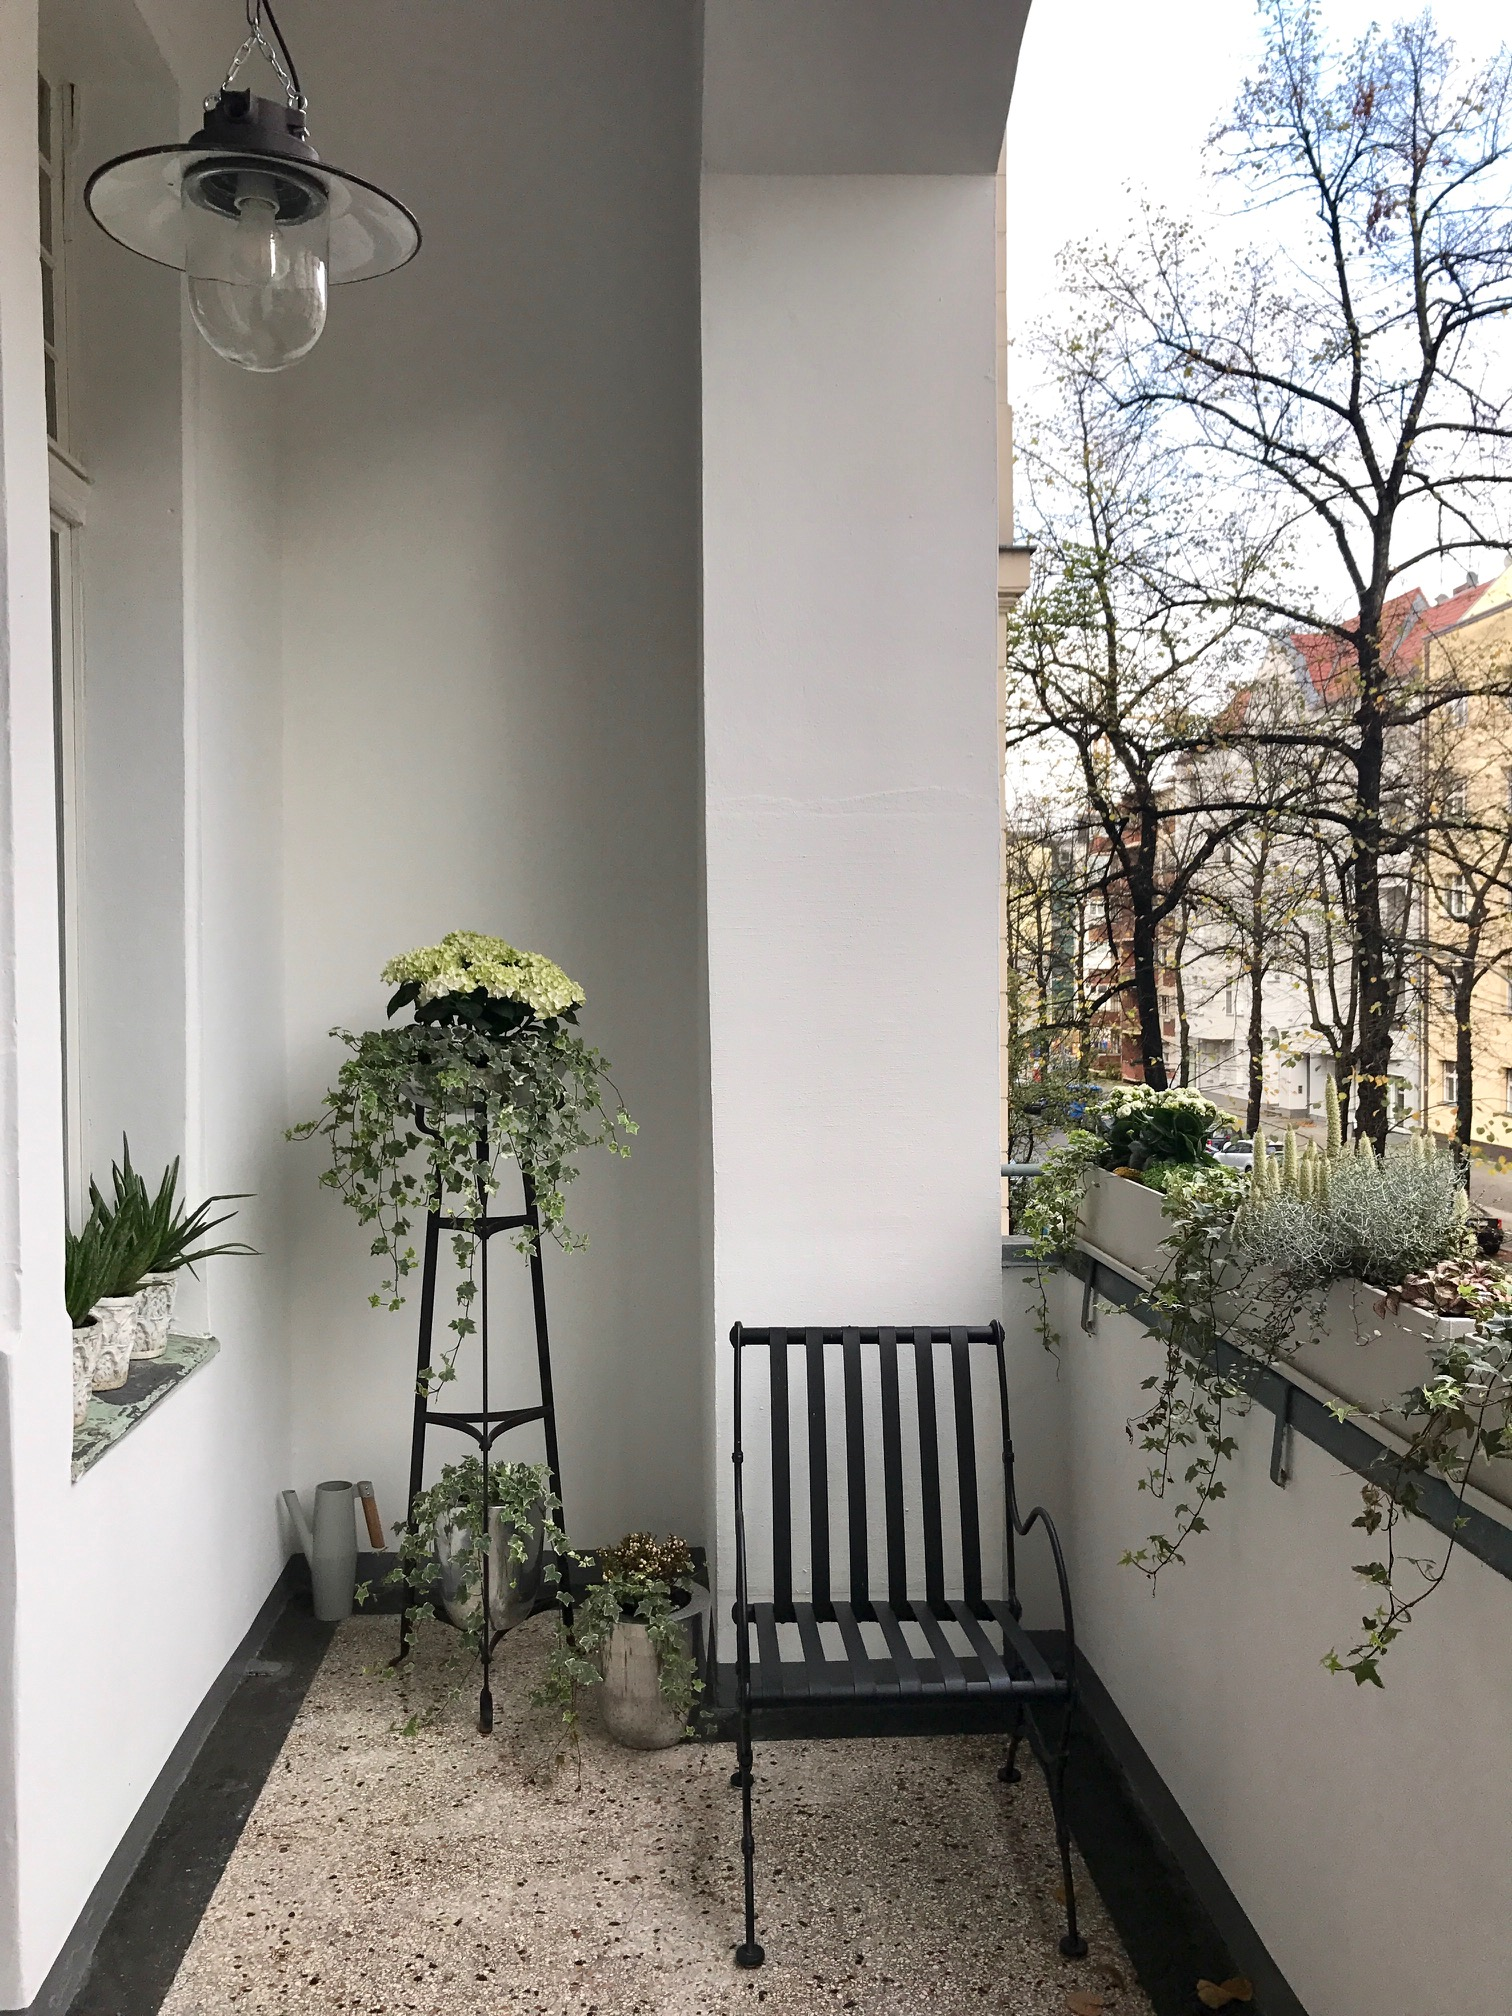 BerlinerMusaion_EventLocation_Balkon